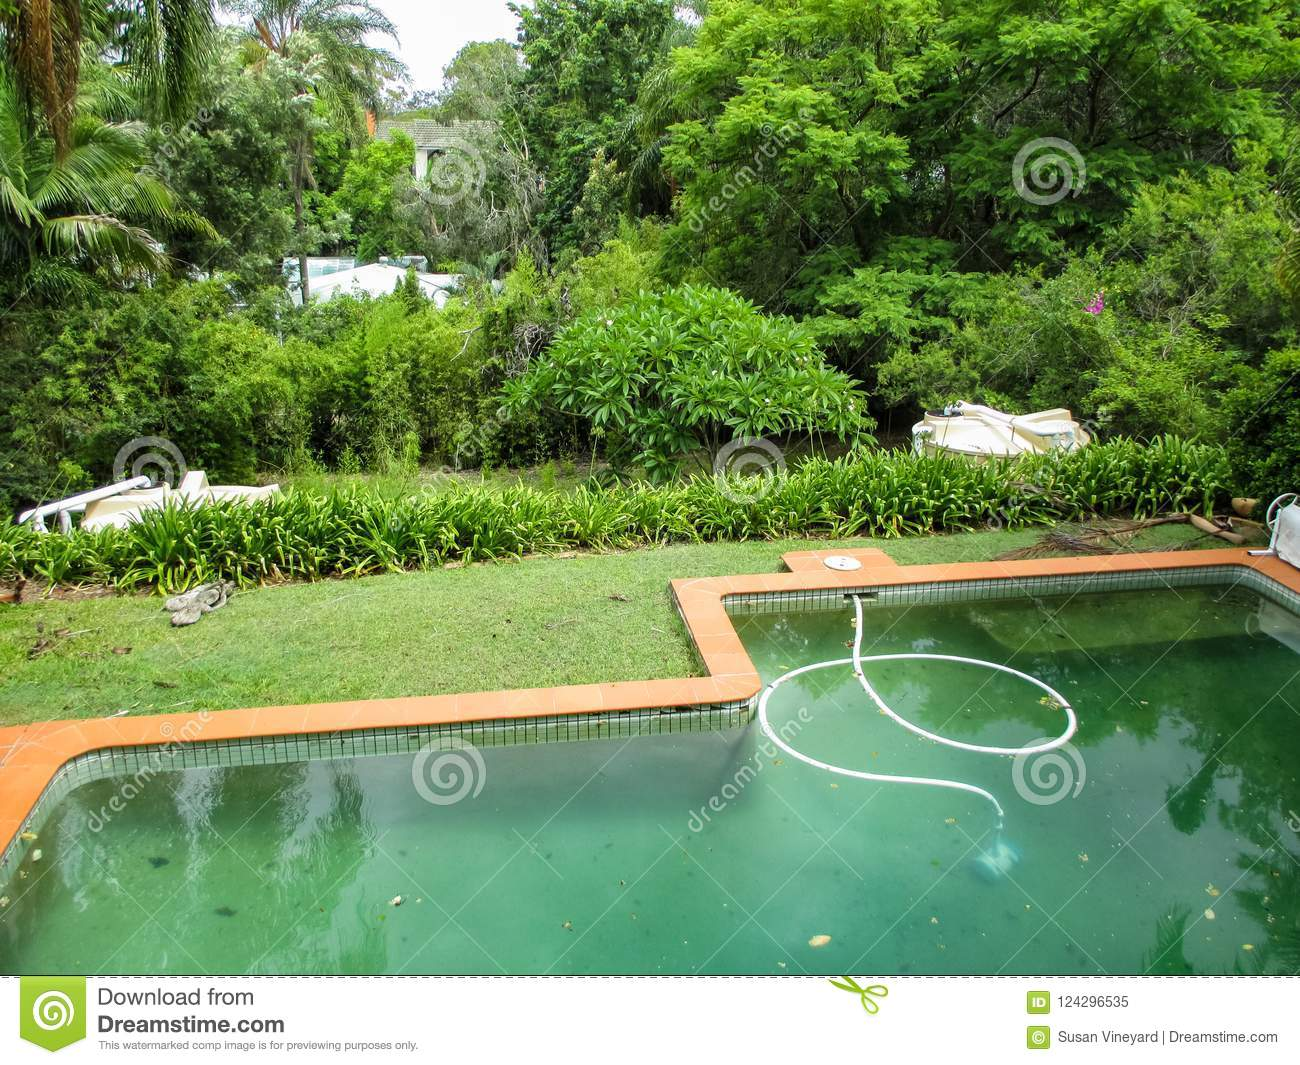 Dirty Green Swimming Pool With Vaccum In It In Very Green Tropical ...